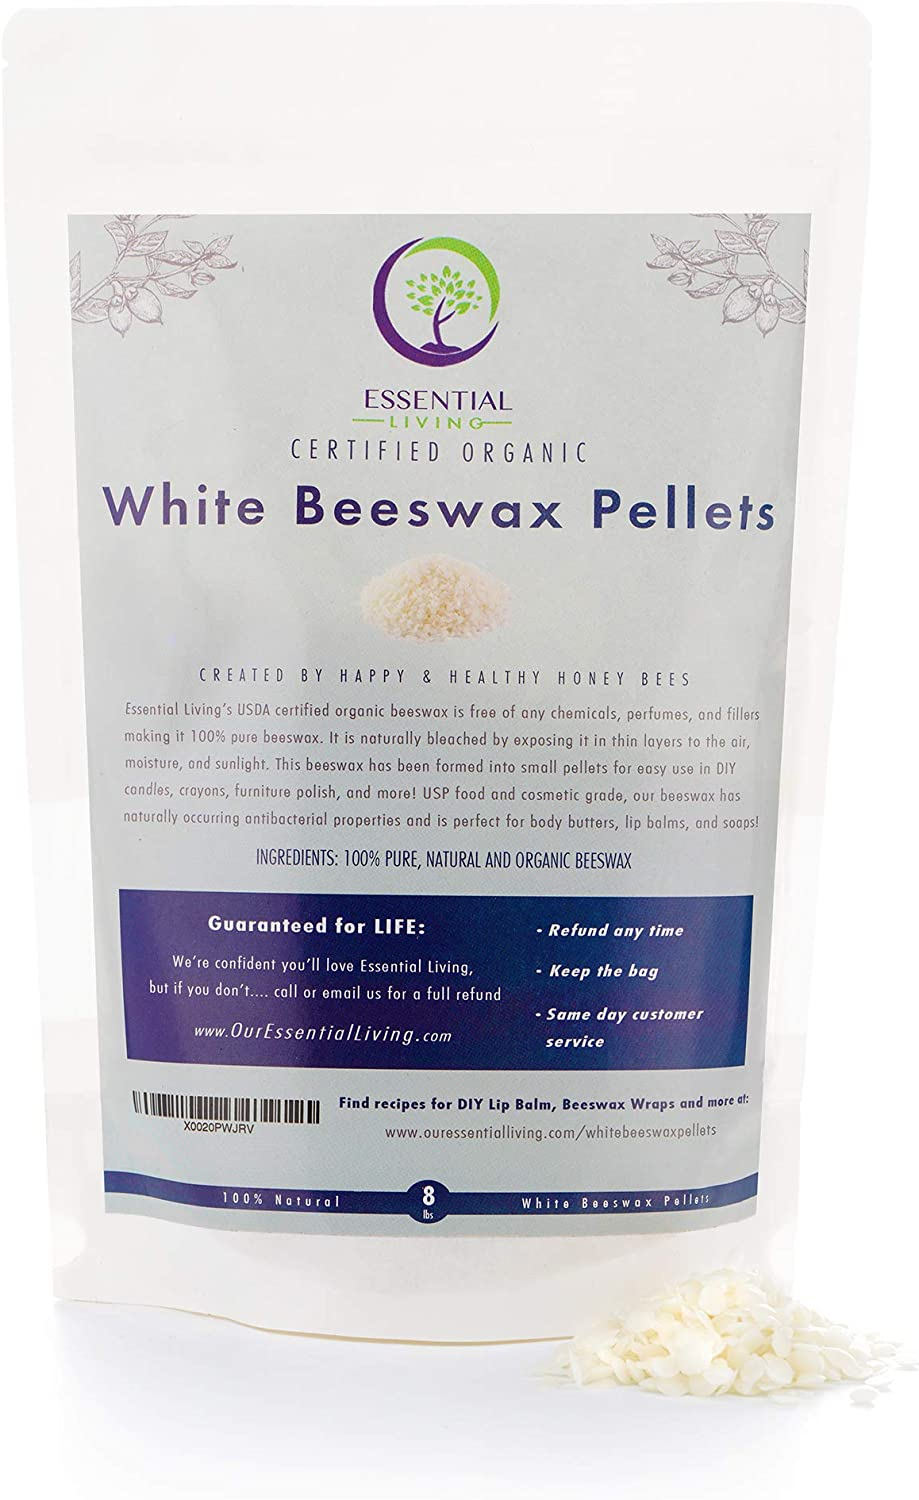 1lb - White Organic Beeswax Pellets, Certified Organic, Food Grade, Cosmetic Grade, Great for DIY Lip Balms, Candles, Beeswax Reusable Food Wraps